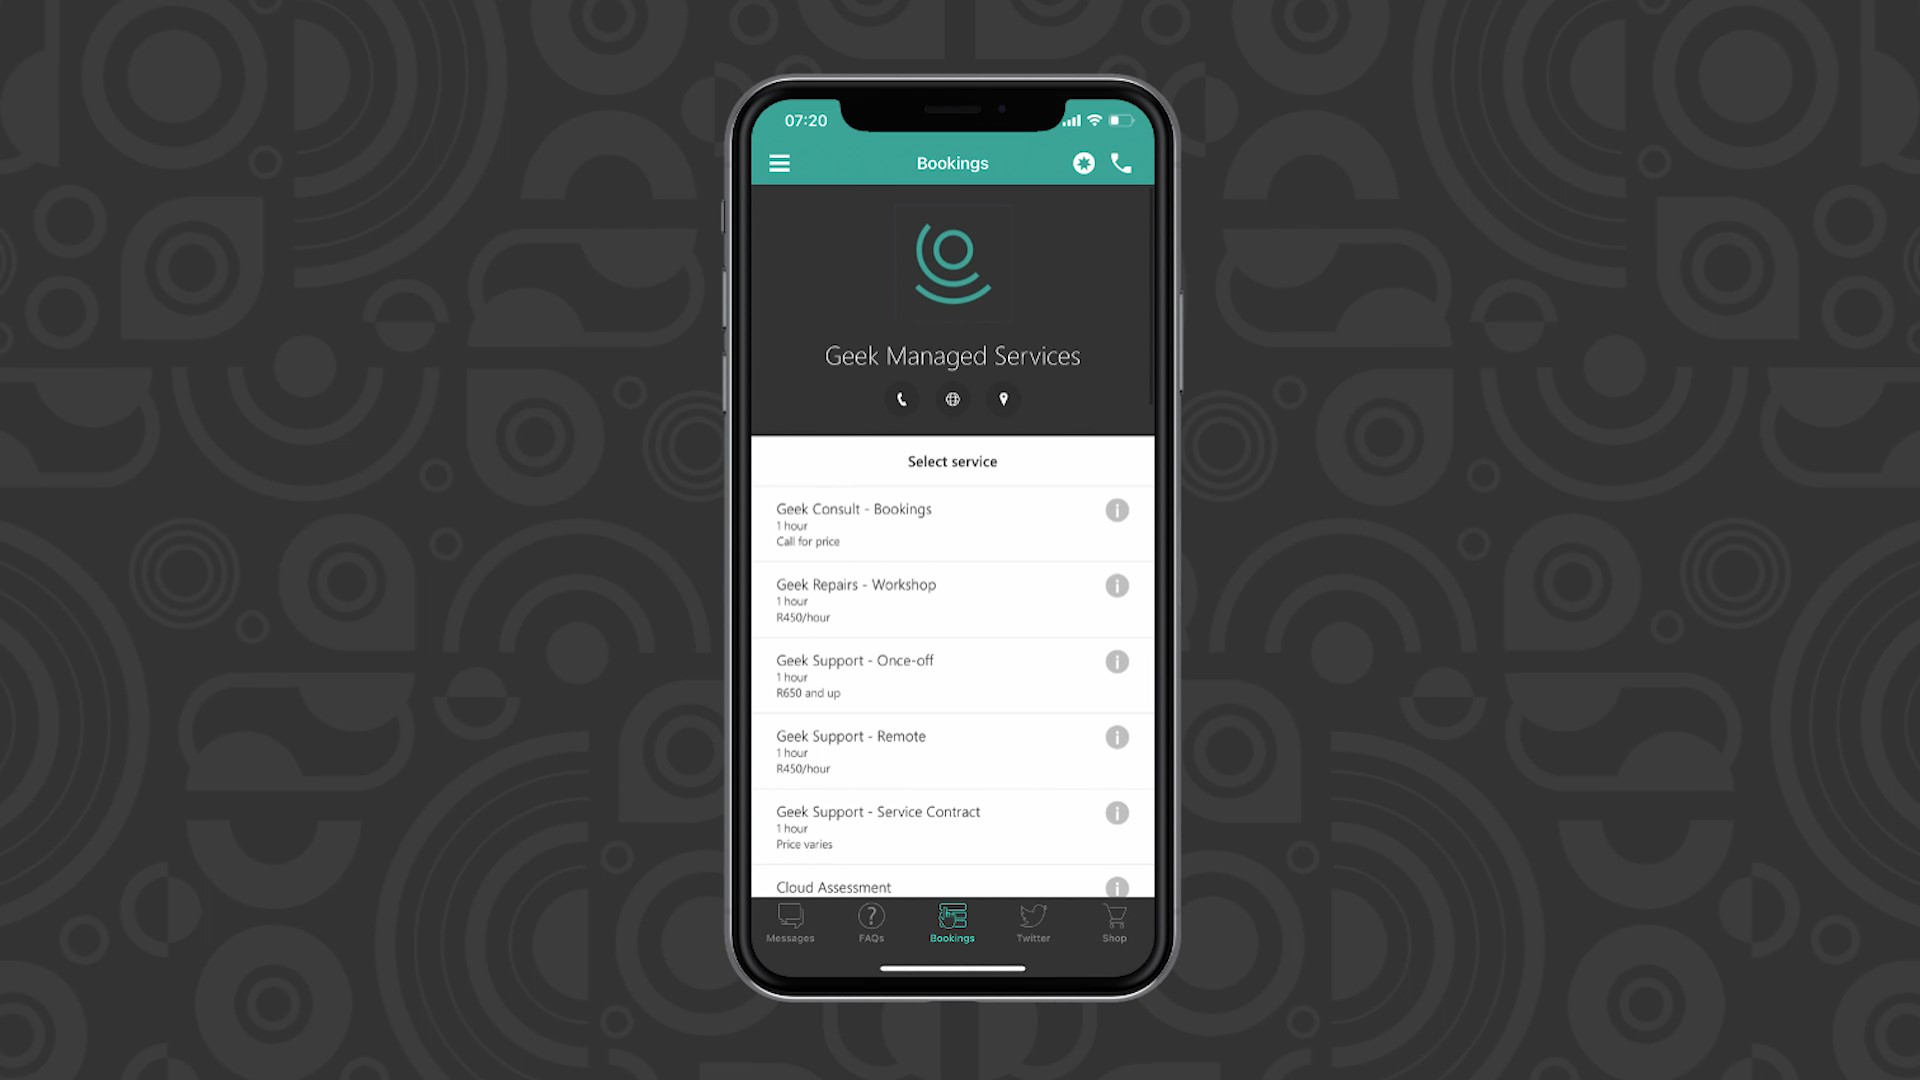 Geek Managed Services communication app